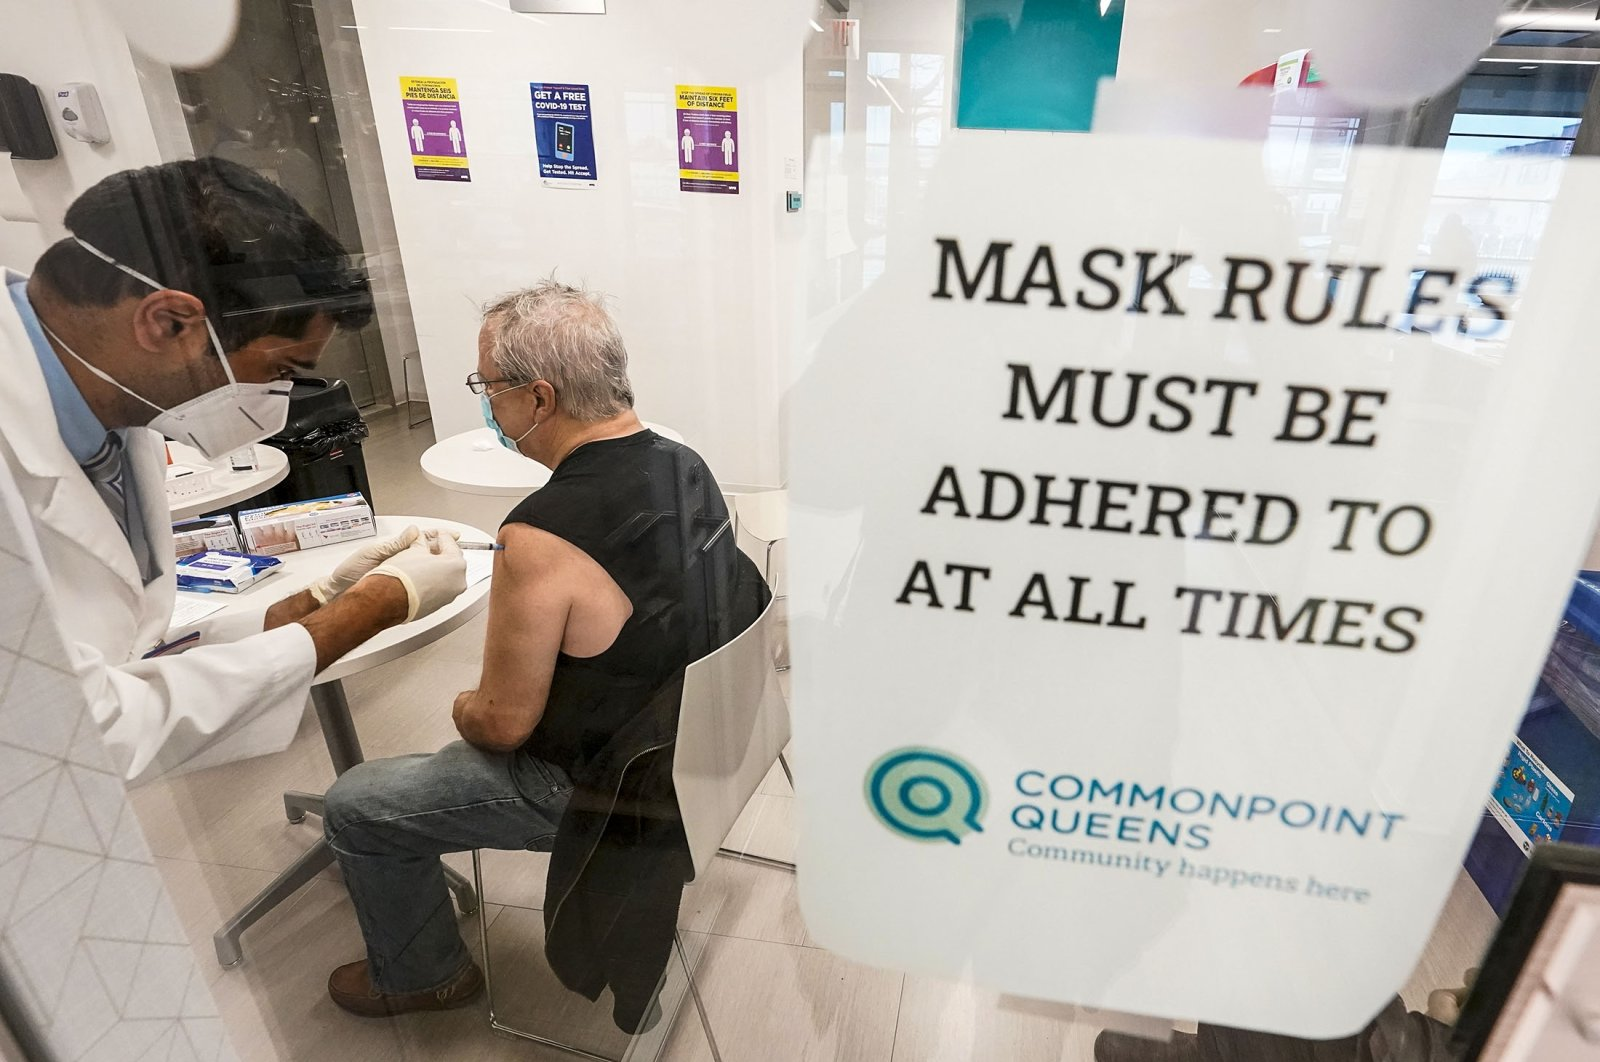 Pharmacist Ambar Keluskar inoculates a patient with the first dose of the Moderna COVID-19 vaccine at a pop-up site on March 18, 2021, in New York. (AP Photo)